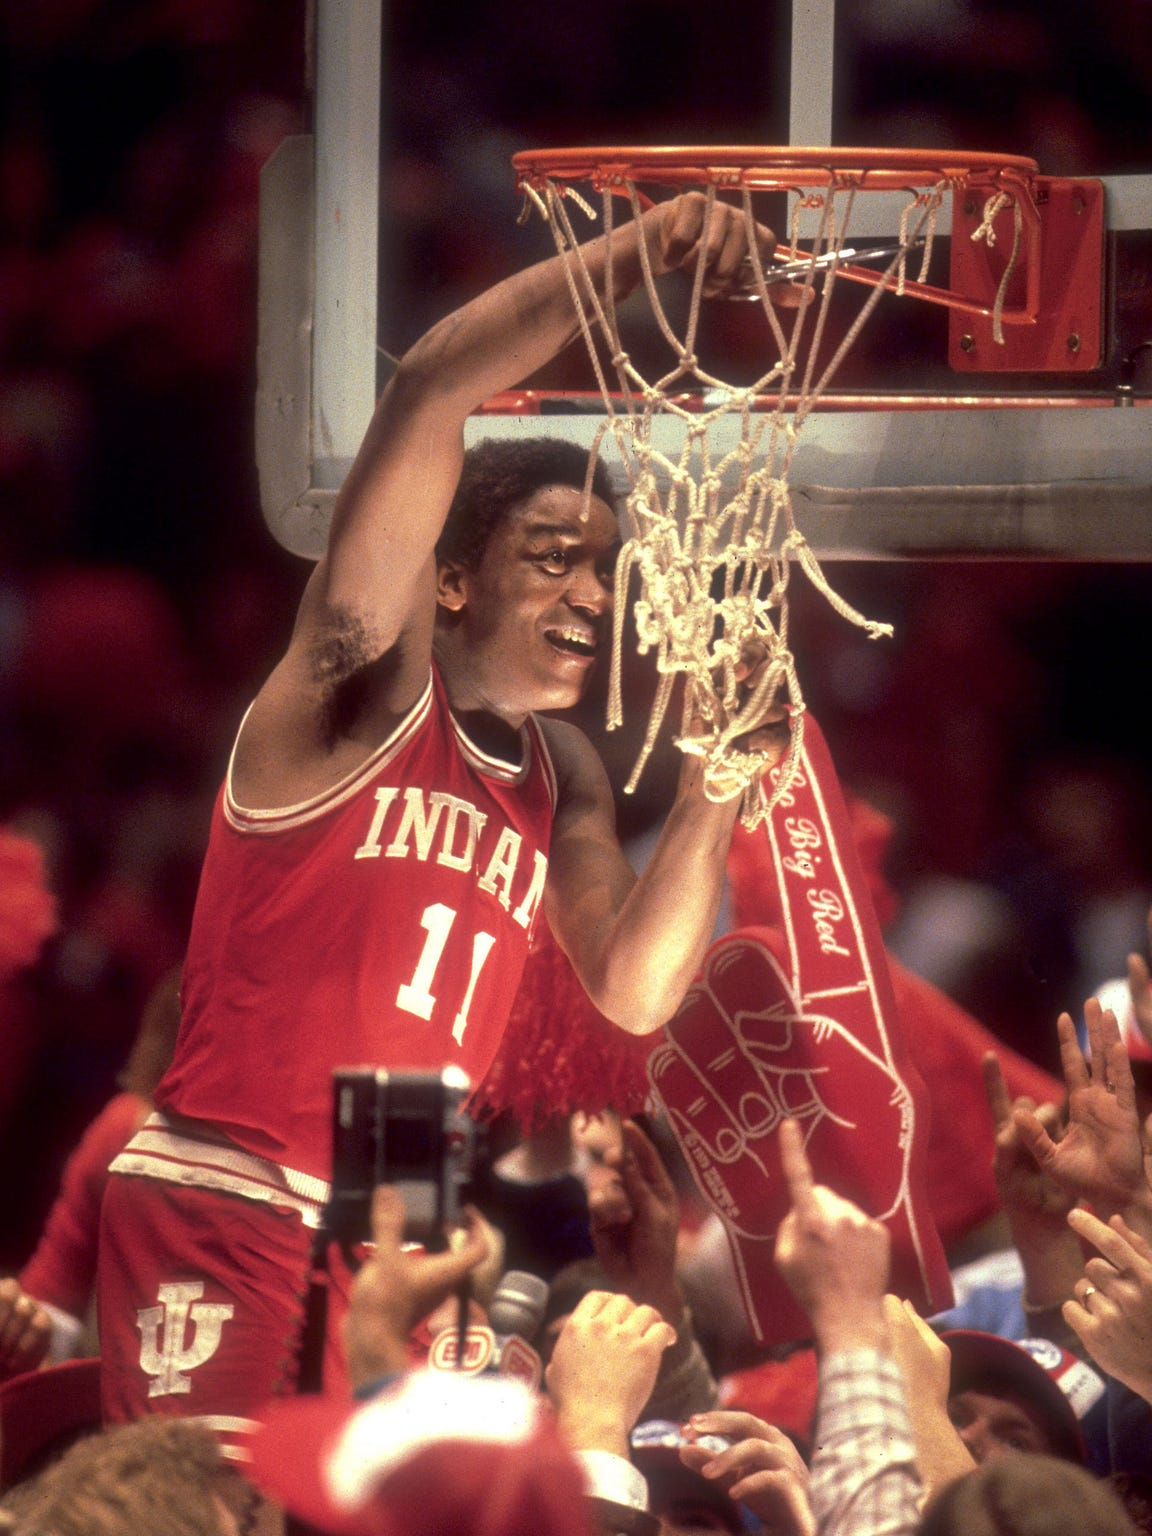 After clashing with Knight earlier in the season, Thomas finished his Indiana career all smiles. He was named the 1981 Final Four's Most Outstanding Player.